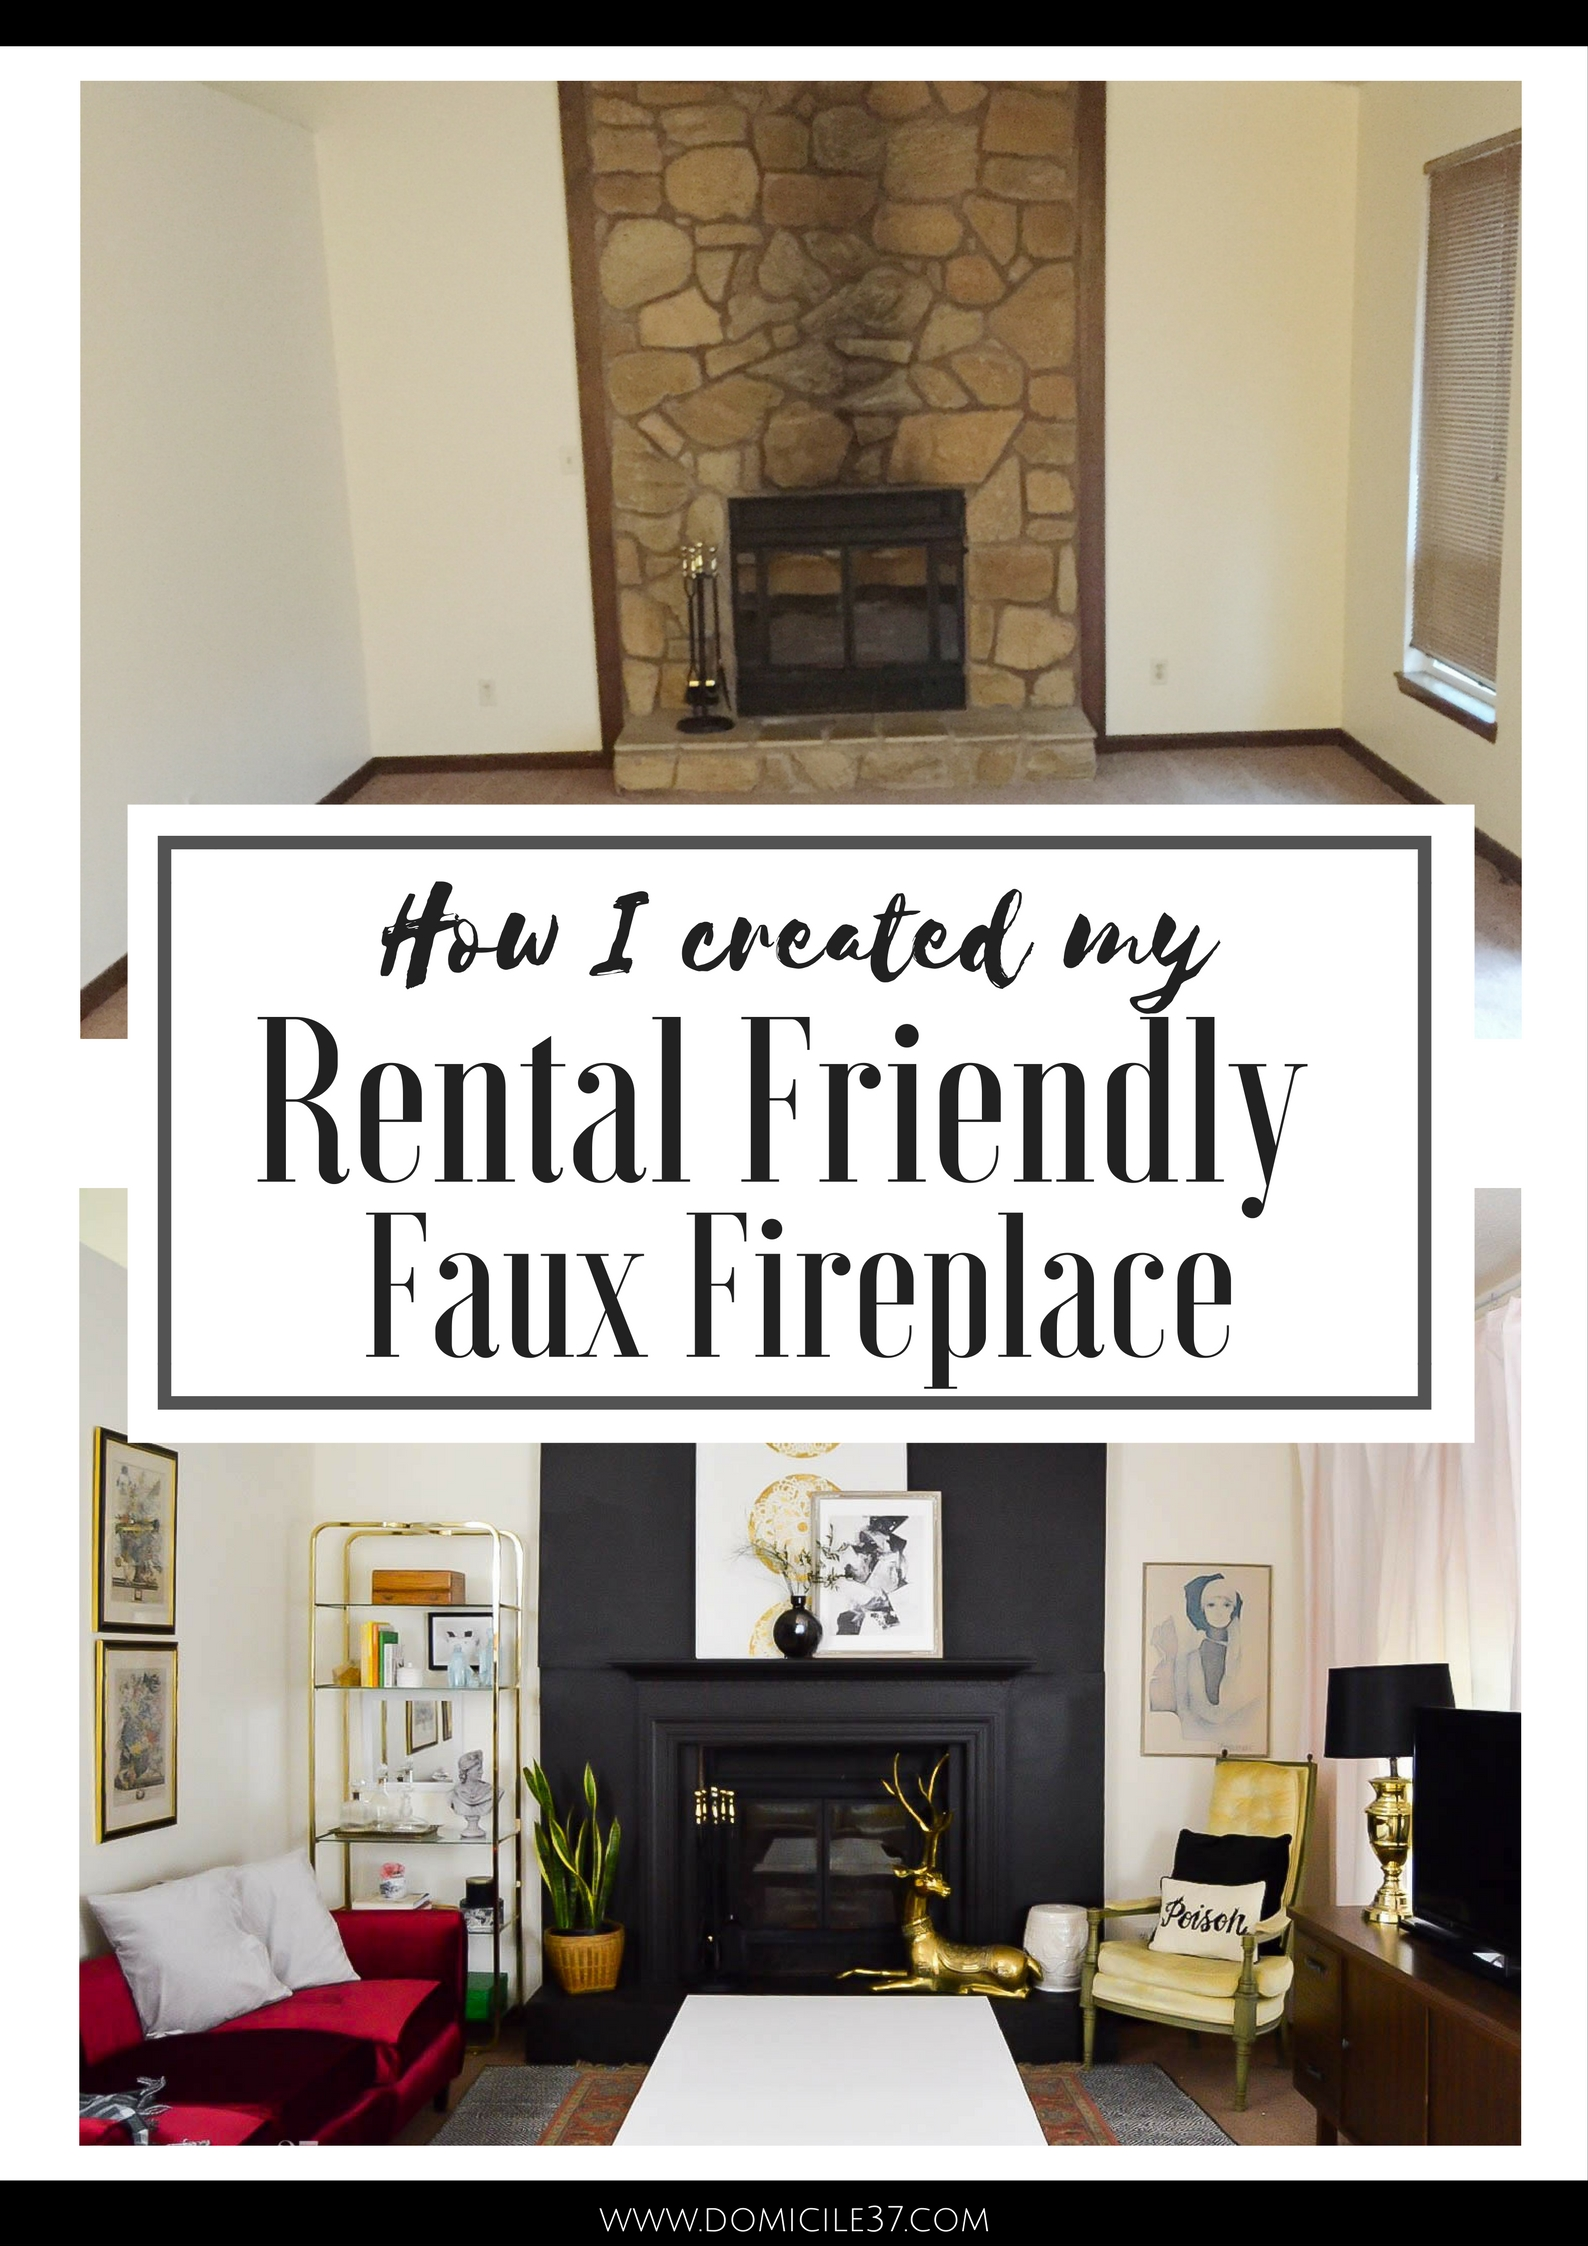 Faux fireplace | rental friendly fireplace | One Room Challenge | Faux fireplace facade | black fireplace | vintage eclectic decor